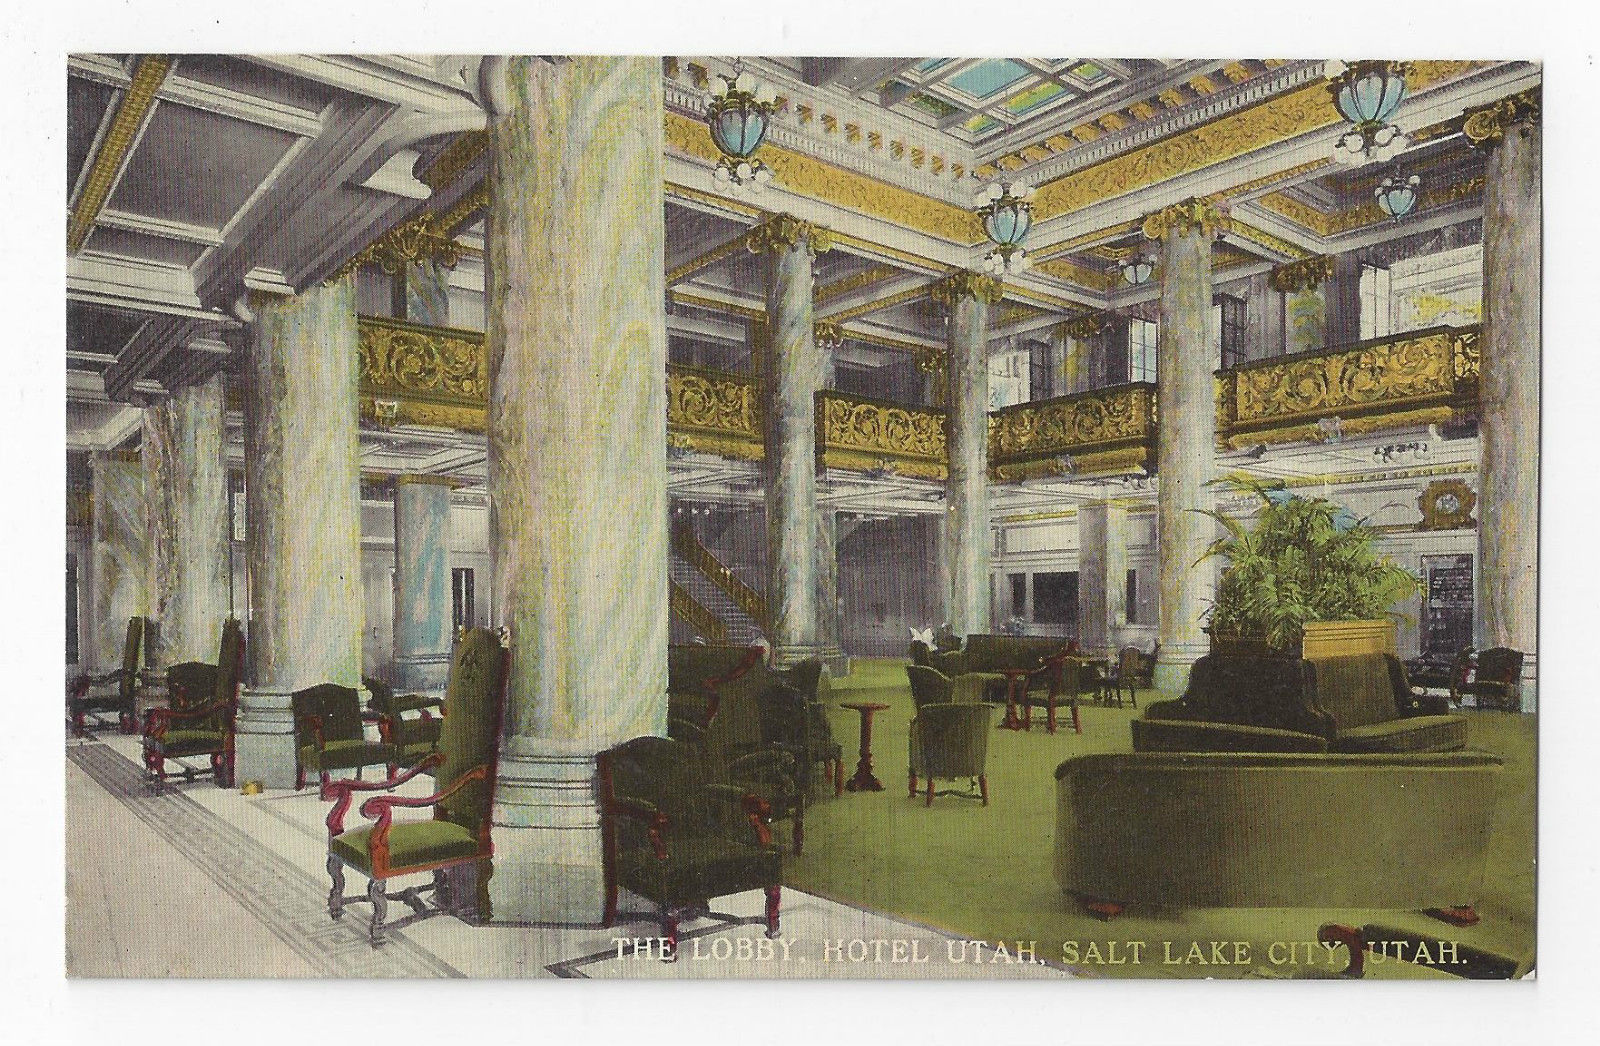 Salt Lake City Hotel Utah Interior The Lobby Vintage